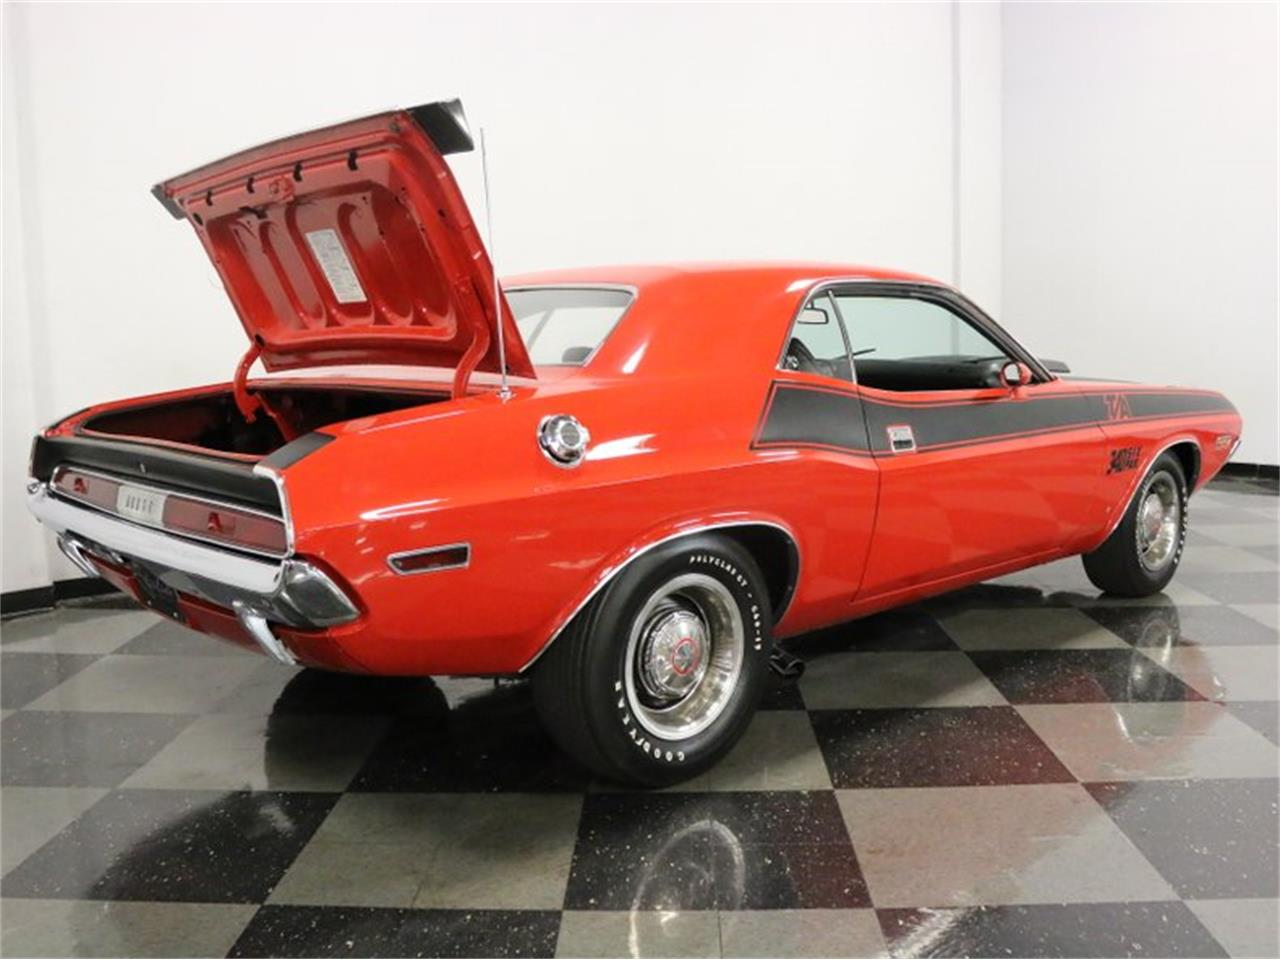 Large Picture of '70 Dodge Challenger T/A Offered by Streetside Classics - Dallas / Fort Worth - N7CT